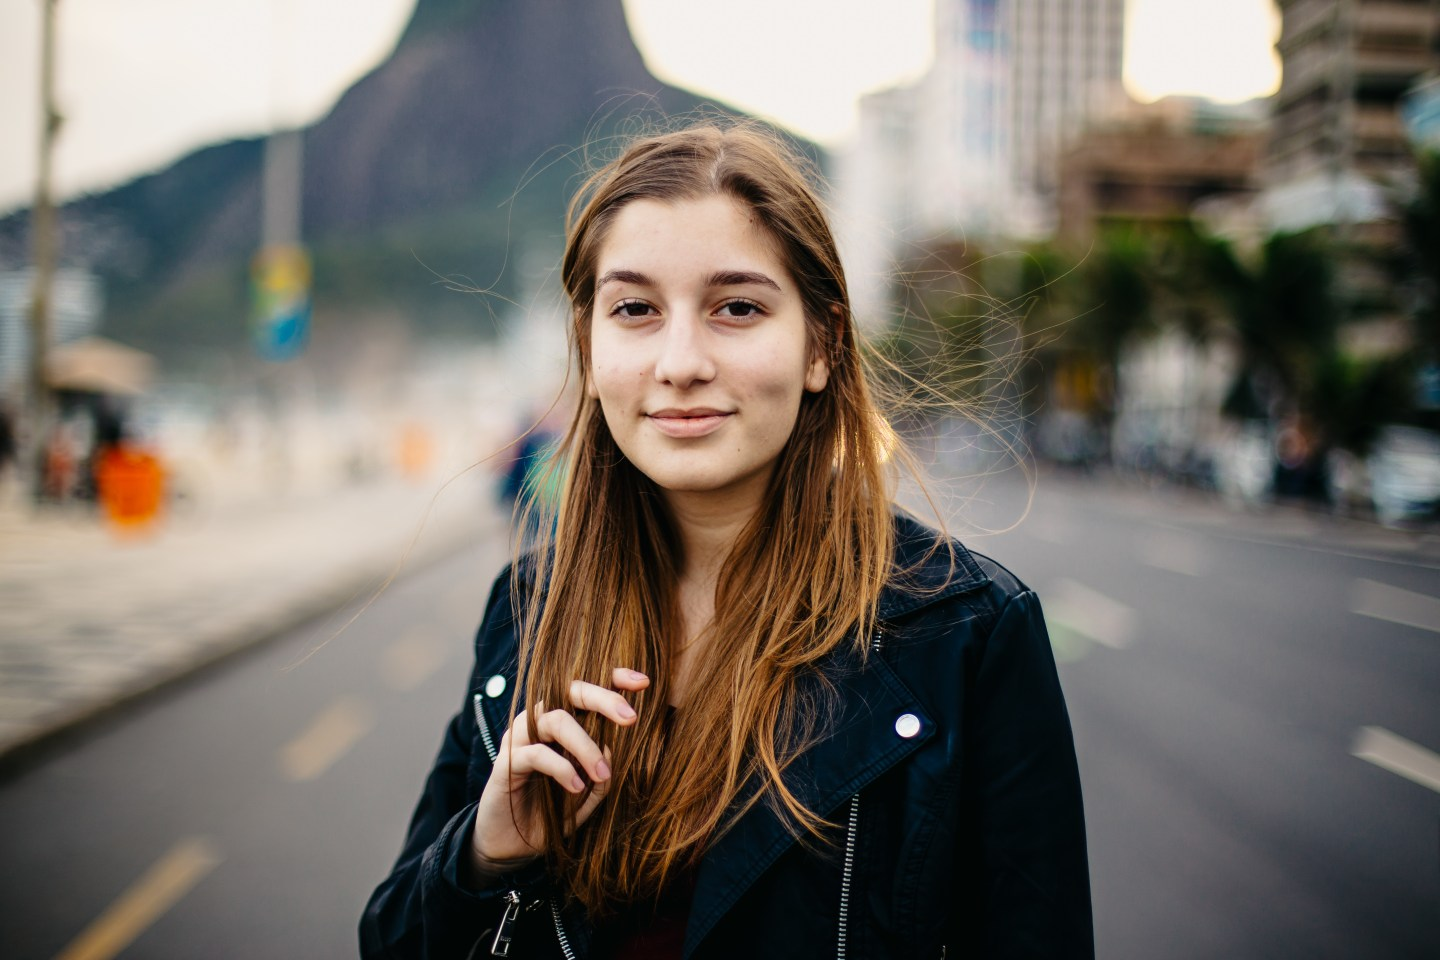 5 Young Brazilians Explain The Real Cost Of The Olympics